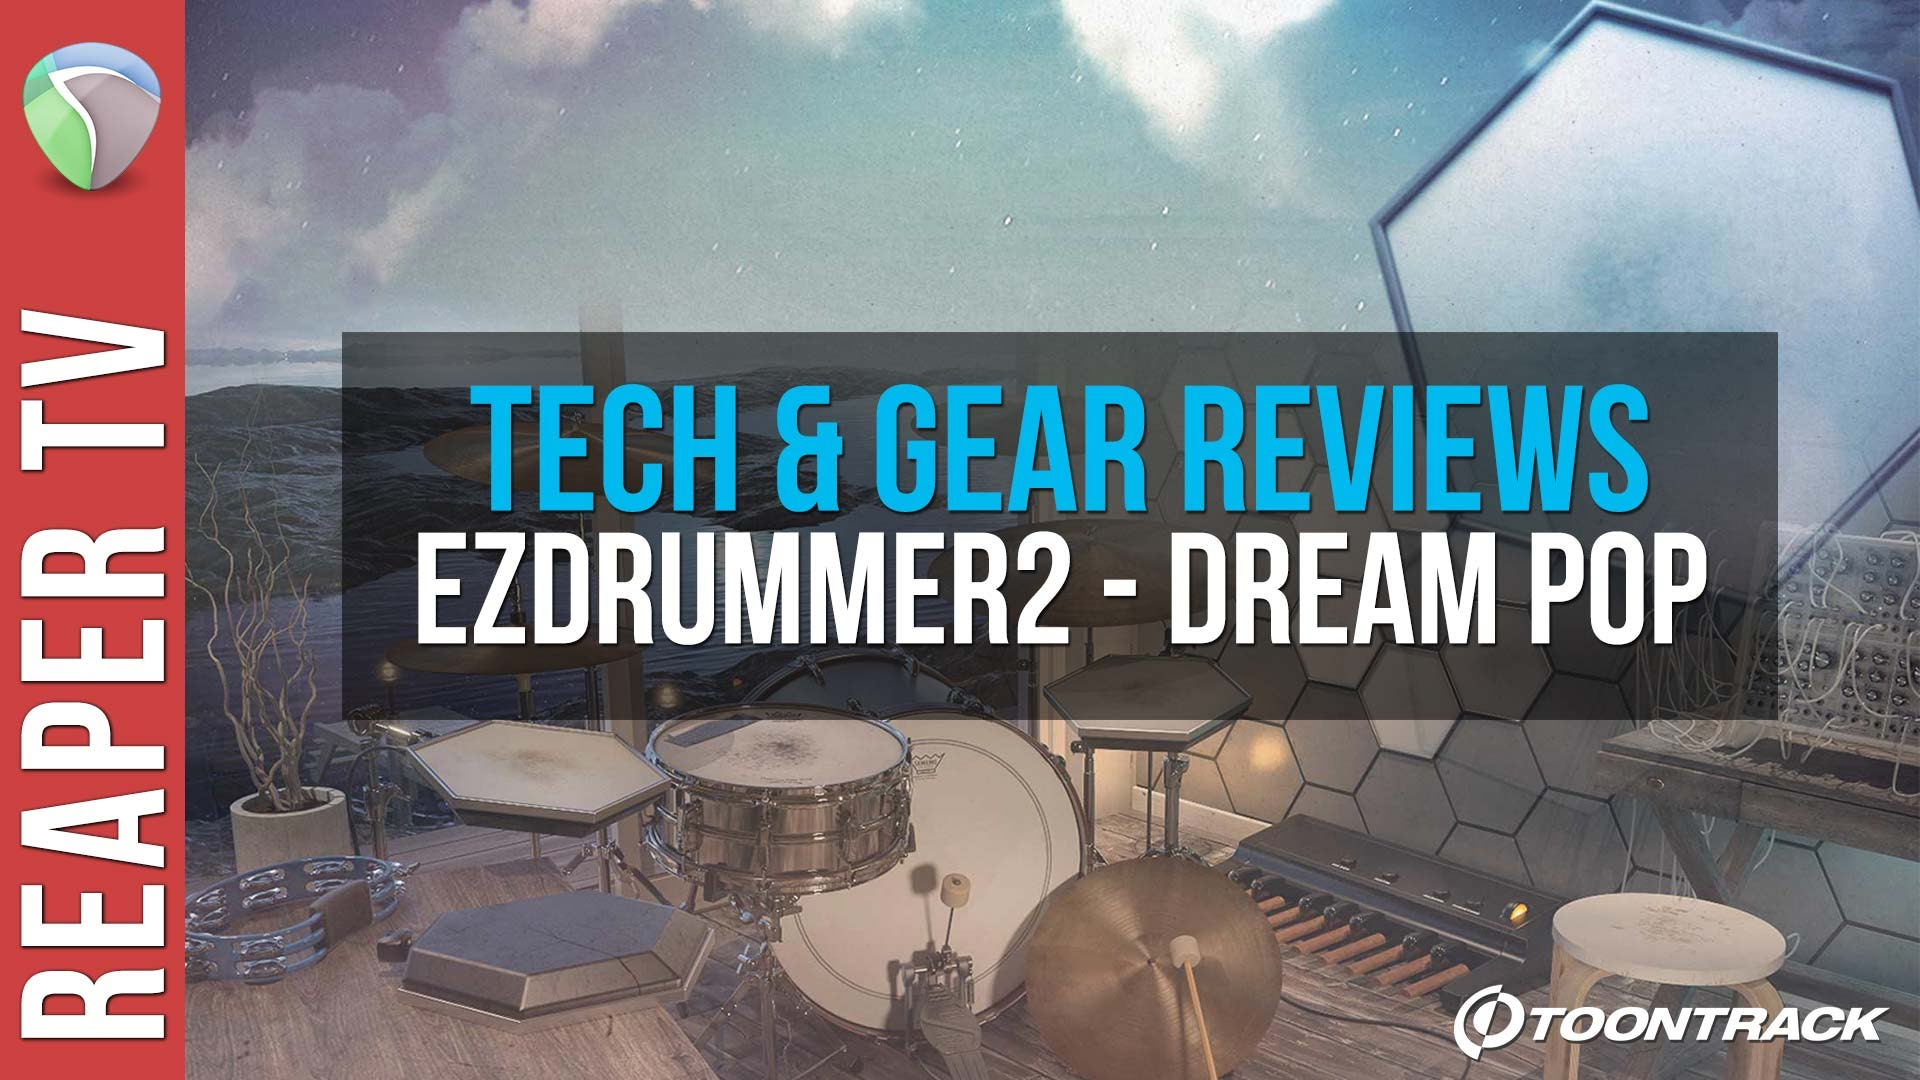 Toontrack Dream Pop EZX Overview for EZ Drummer 2